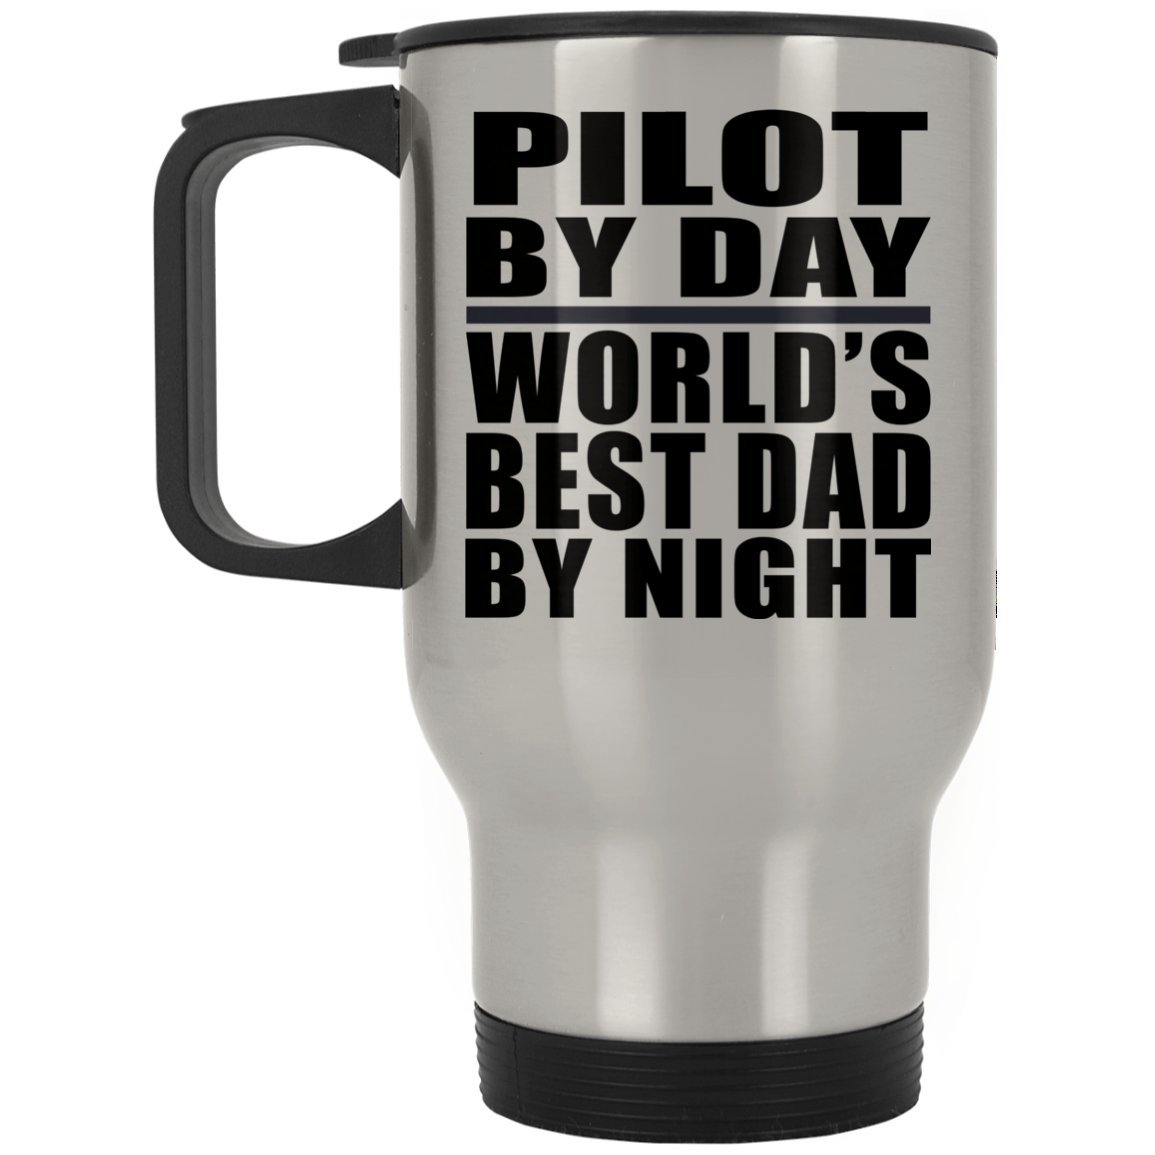 Dad Travel Mug, Pilot By Day World's Best Dad By Night - Travel Mug, Stainless Steel Tumbler, Best Gift for Father, Daddy, Him, Parent from Daughter, Son, Kid, Wife